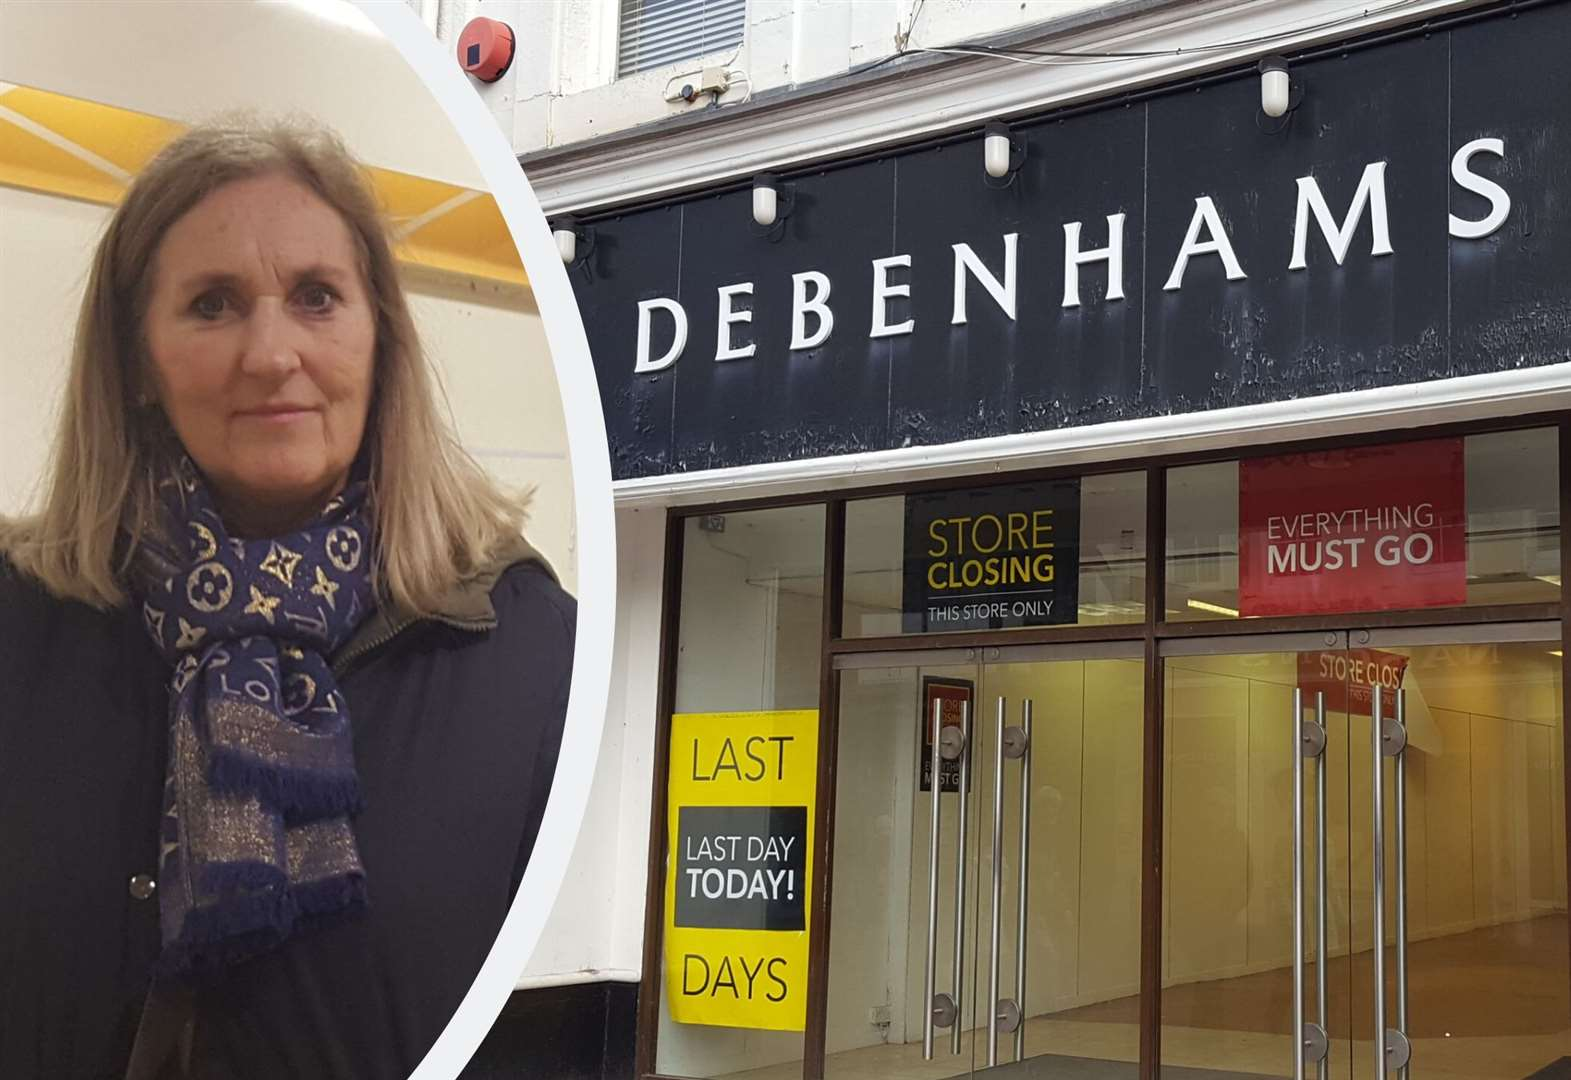 Former staff 'heartbroken' as Debenhams closes